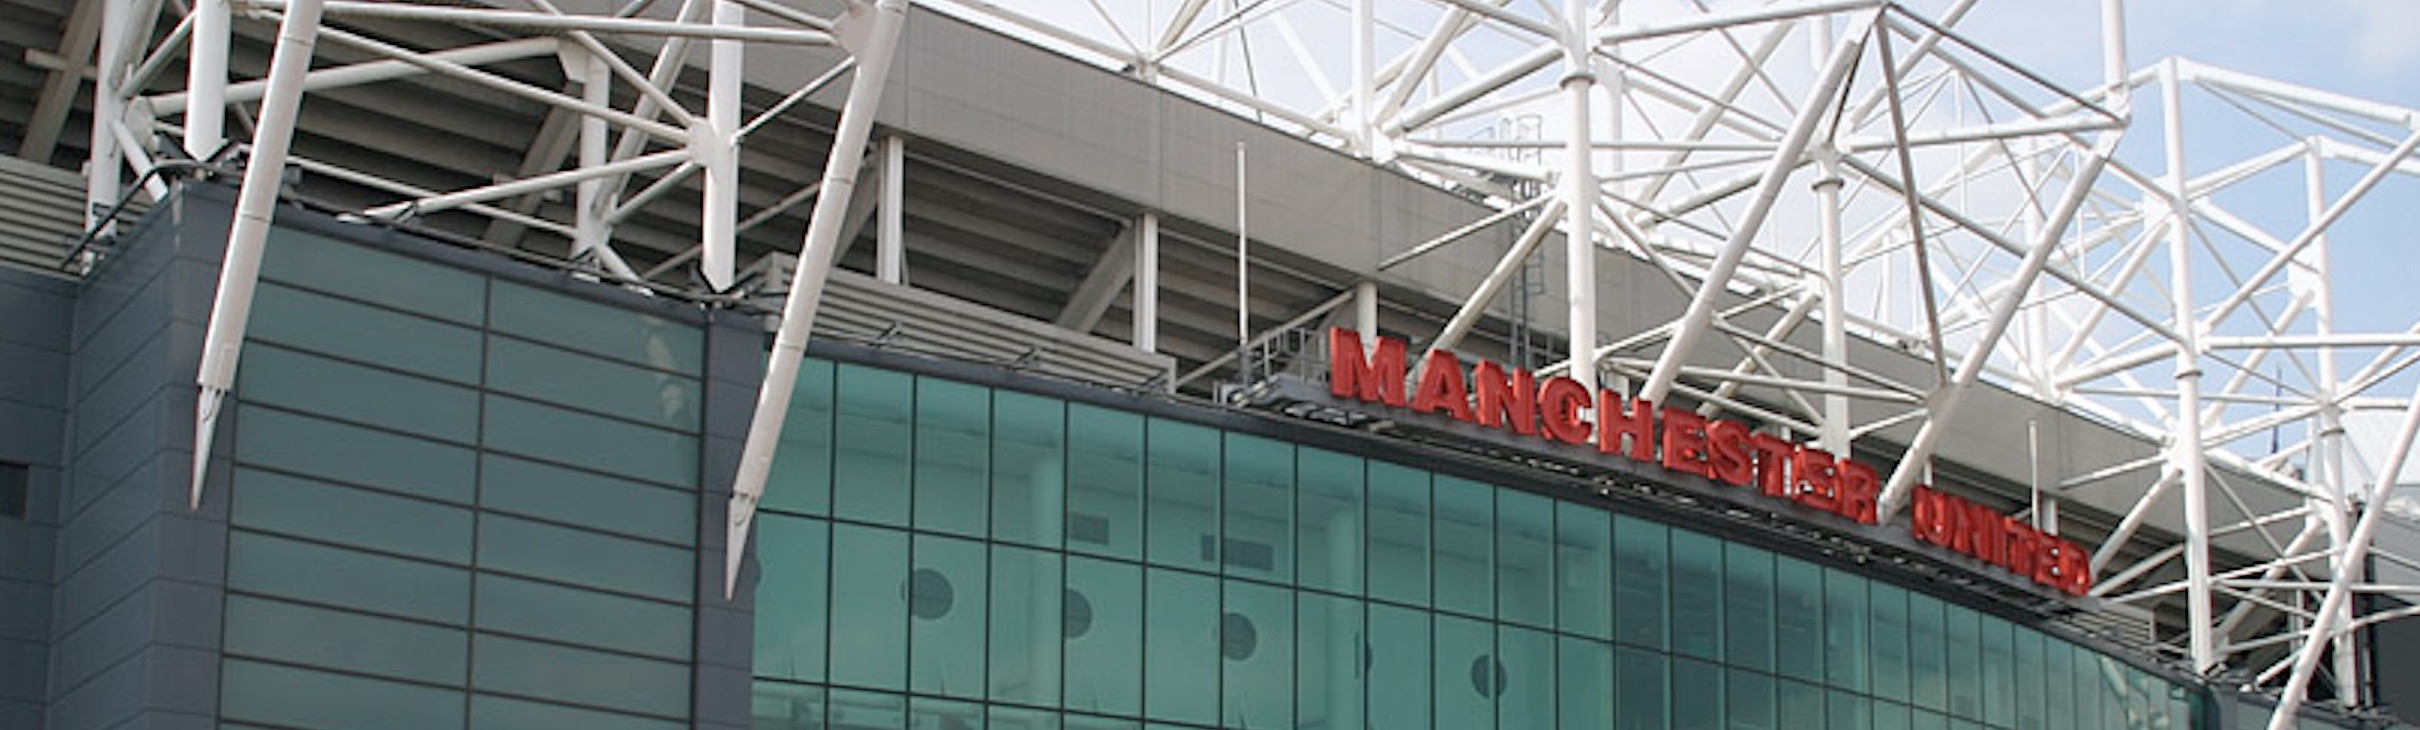 Man United V Tottenham - Daytrip by Coach & Ferry